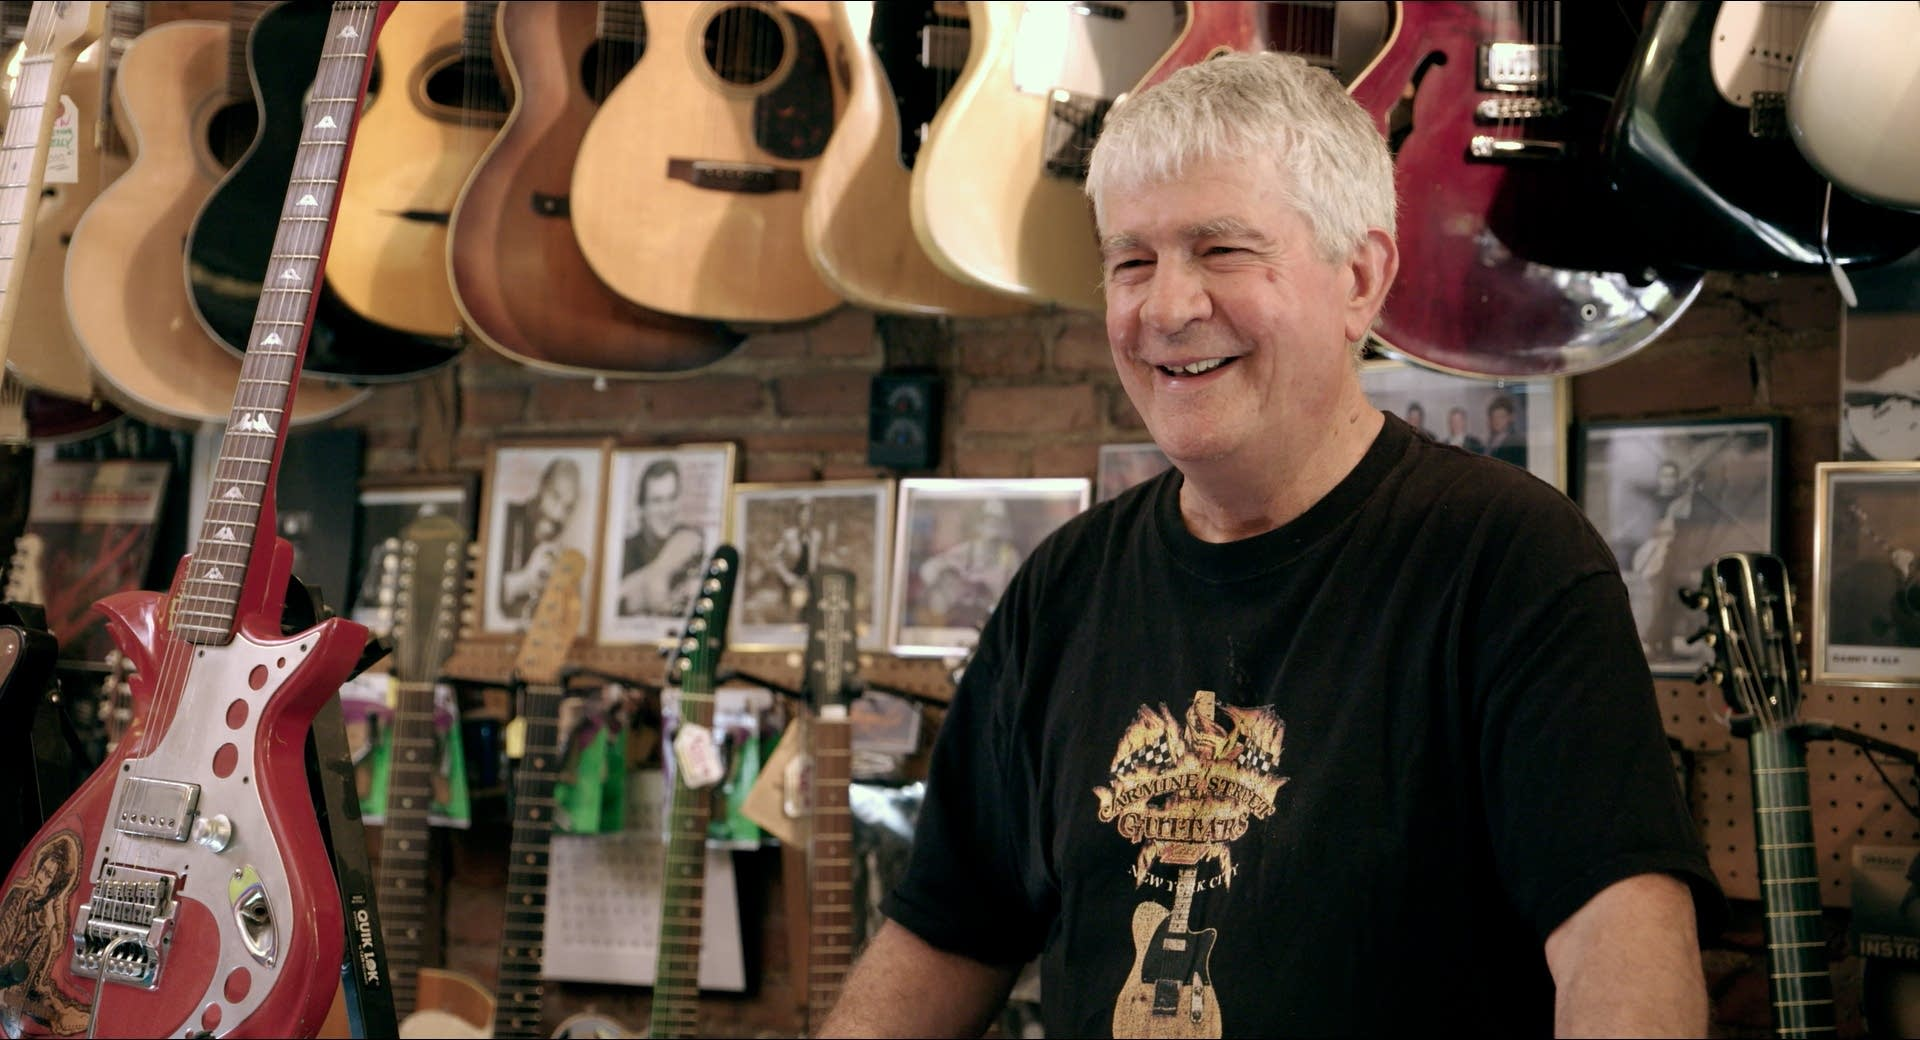 Rick Kelly, proprietor of Carmine Street Guitars